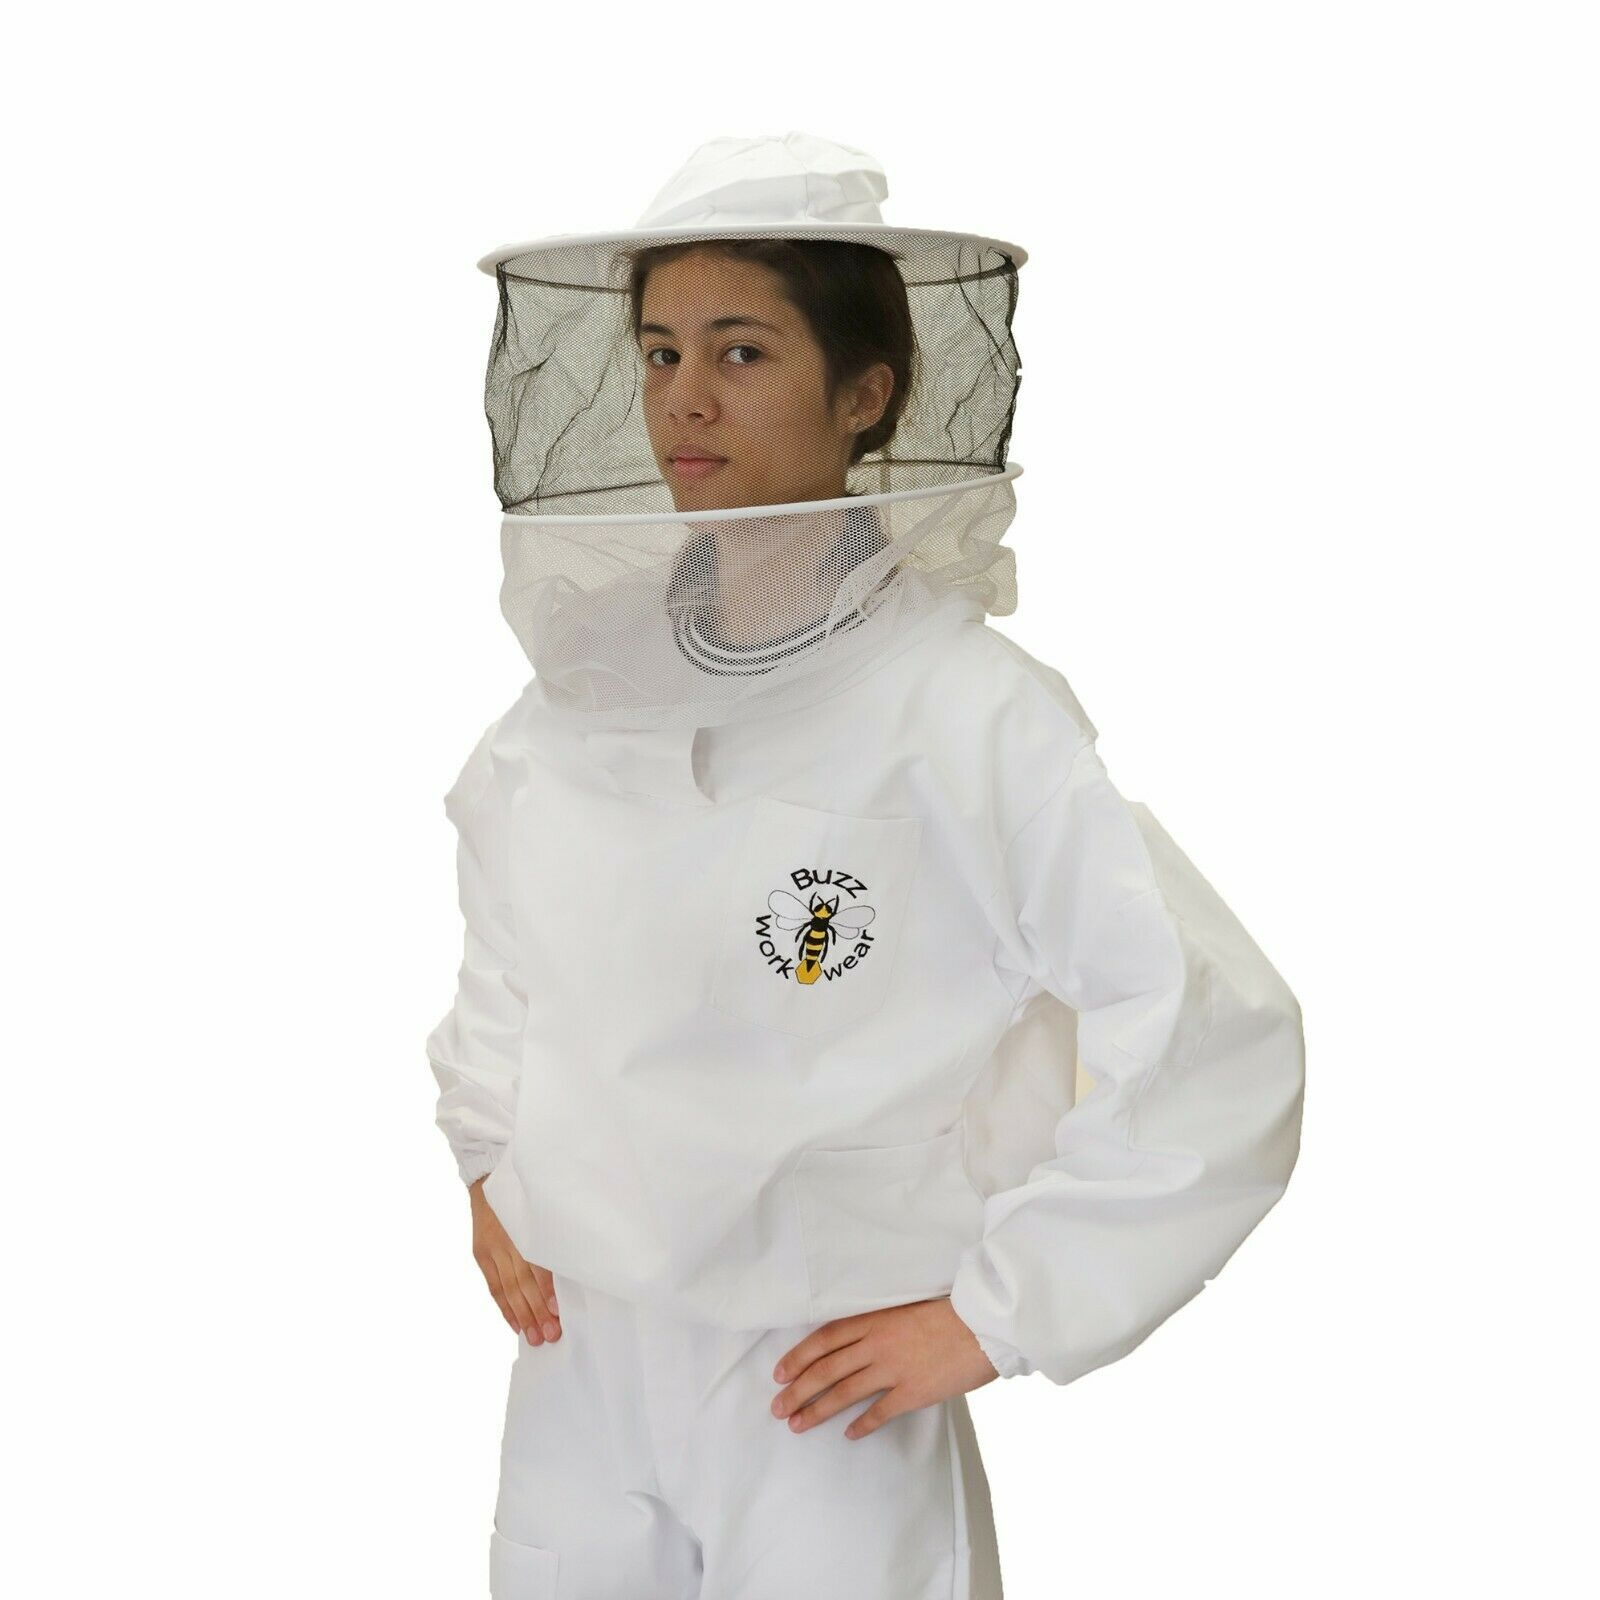 Buzz Beekeepers Bee Jacket/Tunic with Round Veil - EXTRA SMALL